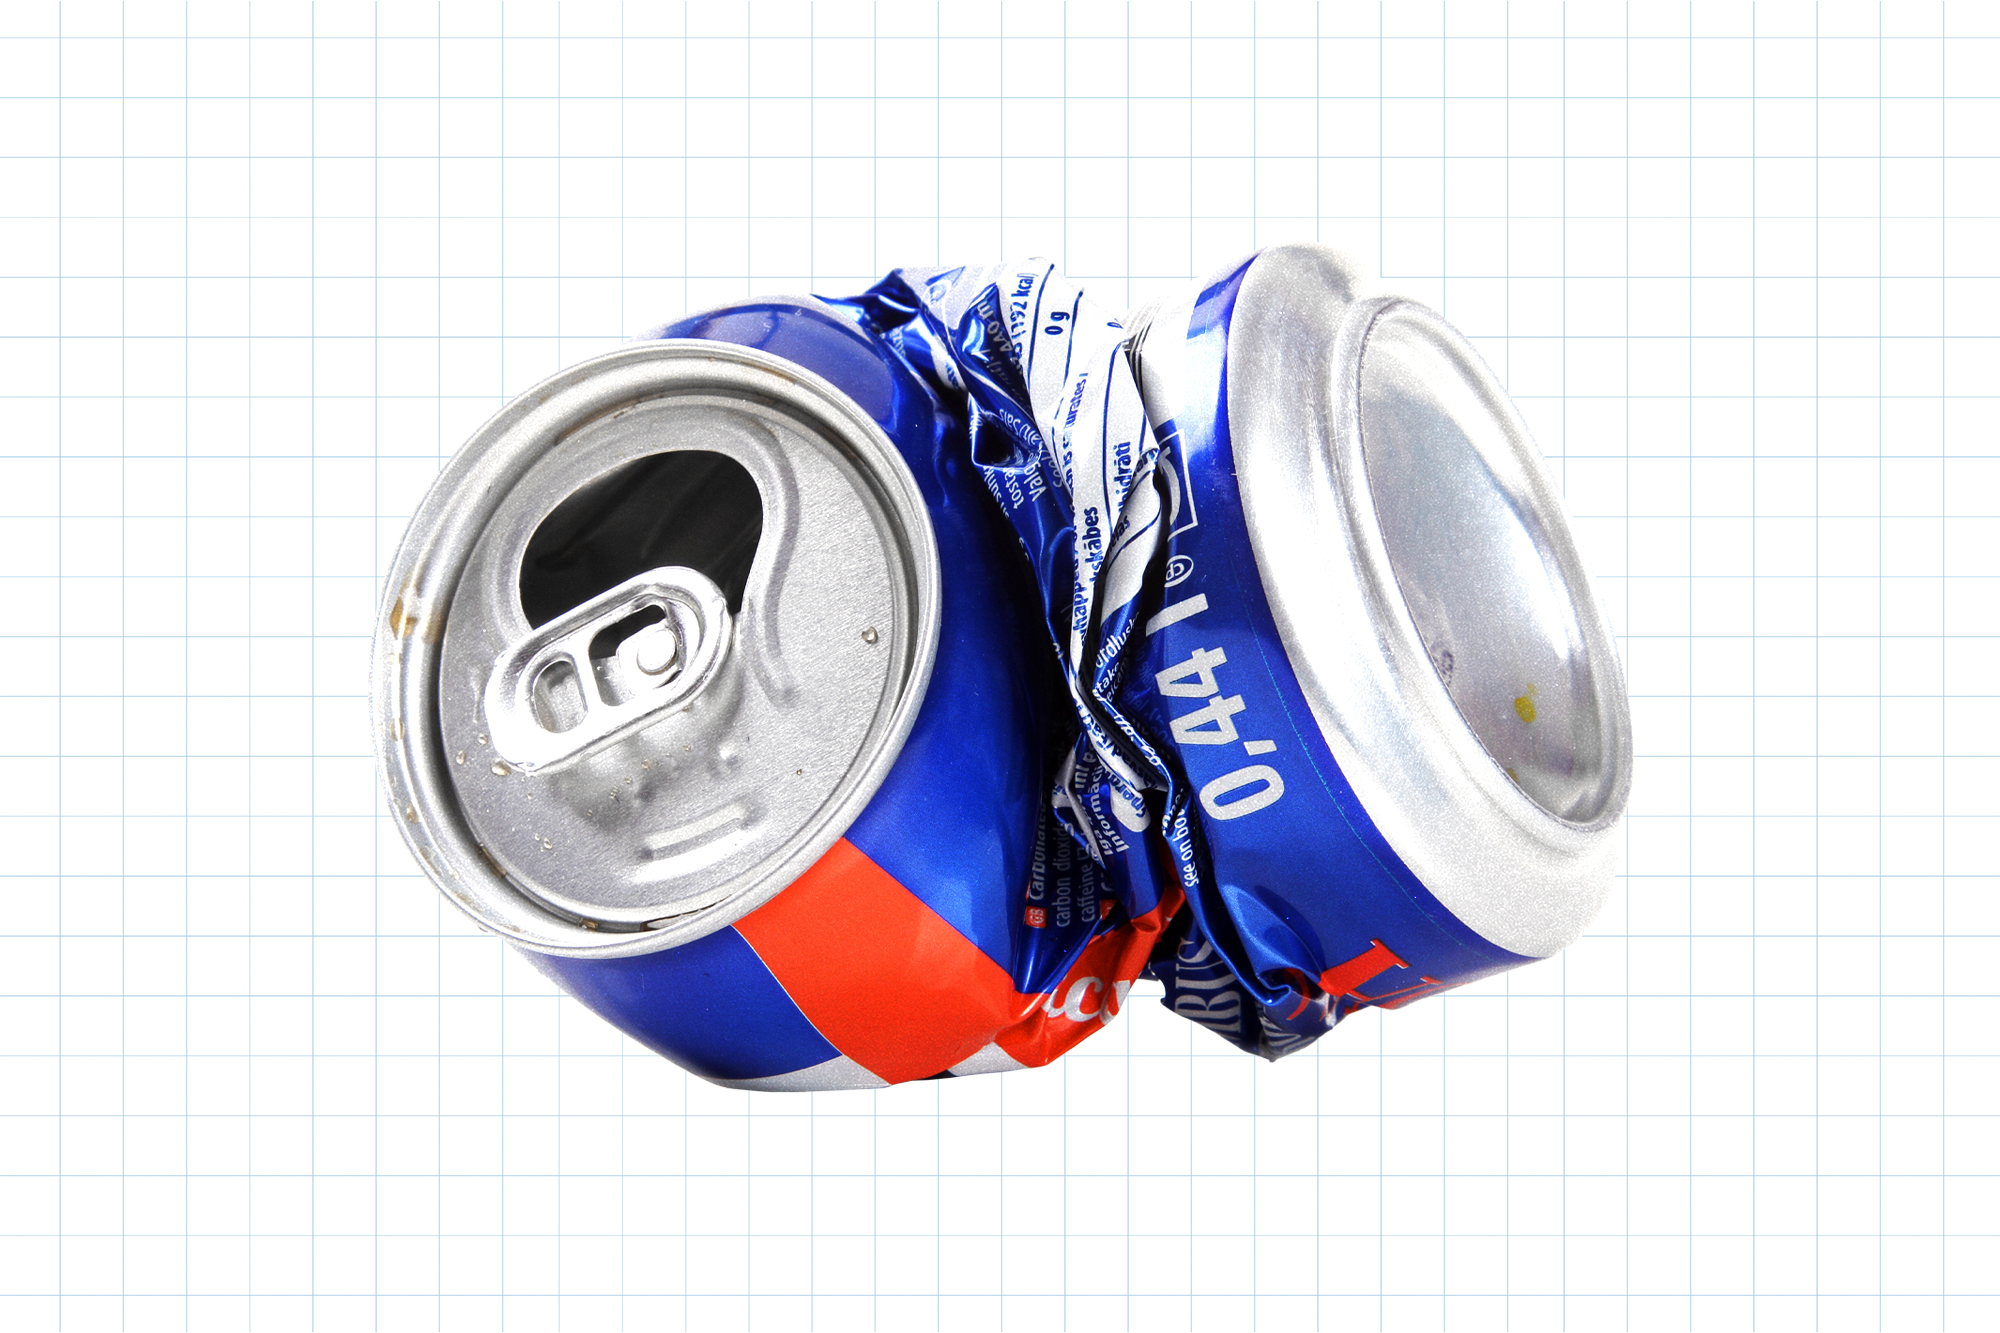 A crushed can on a white background with a blue grid